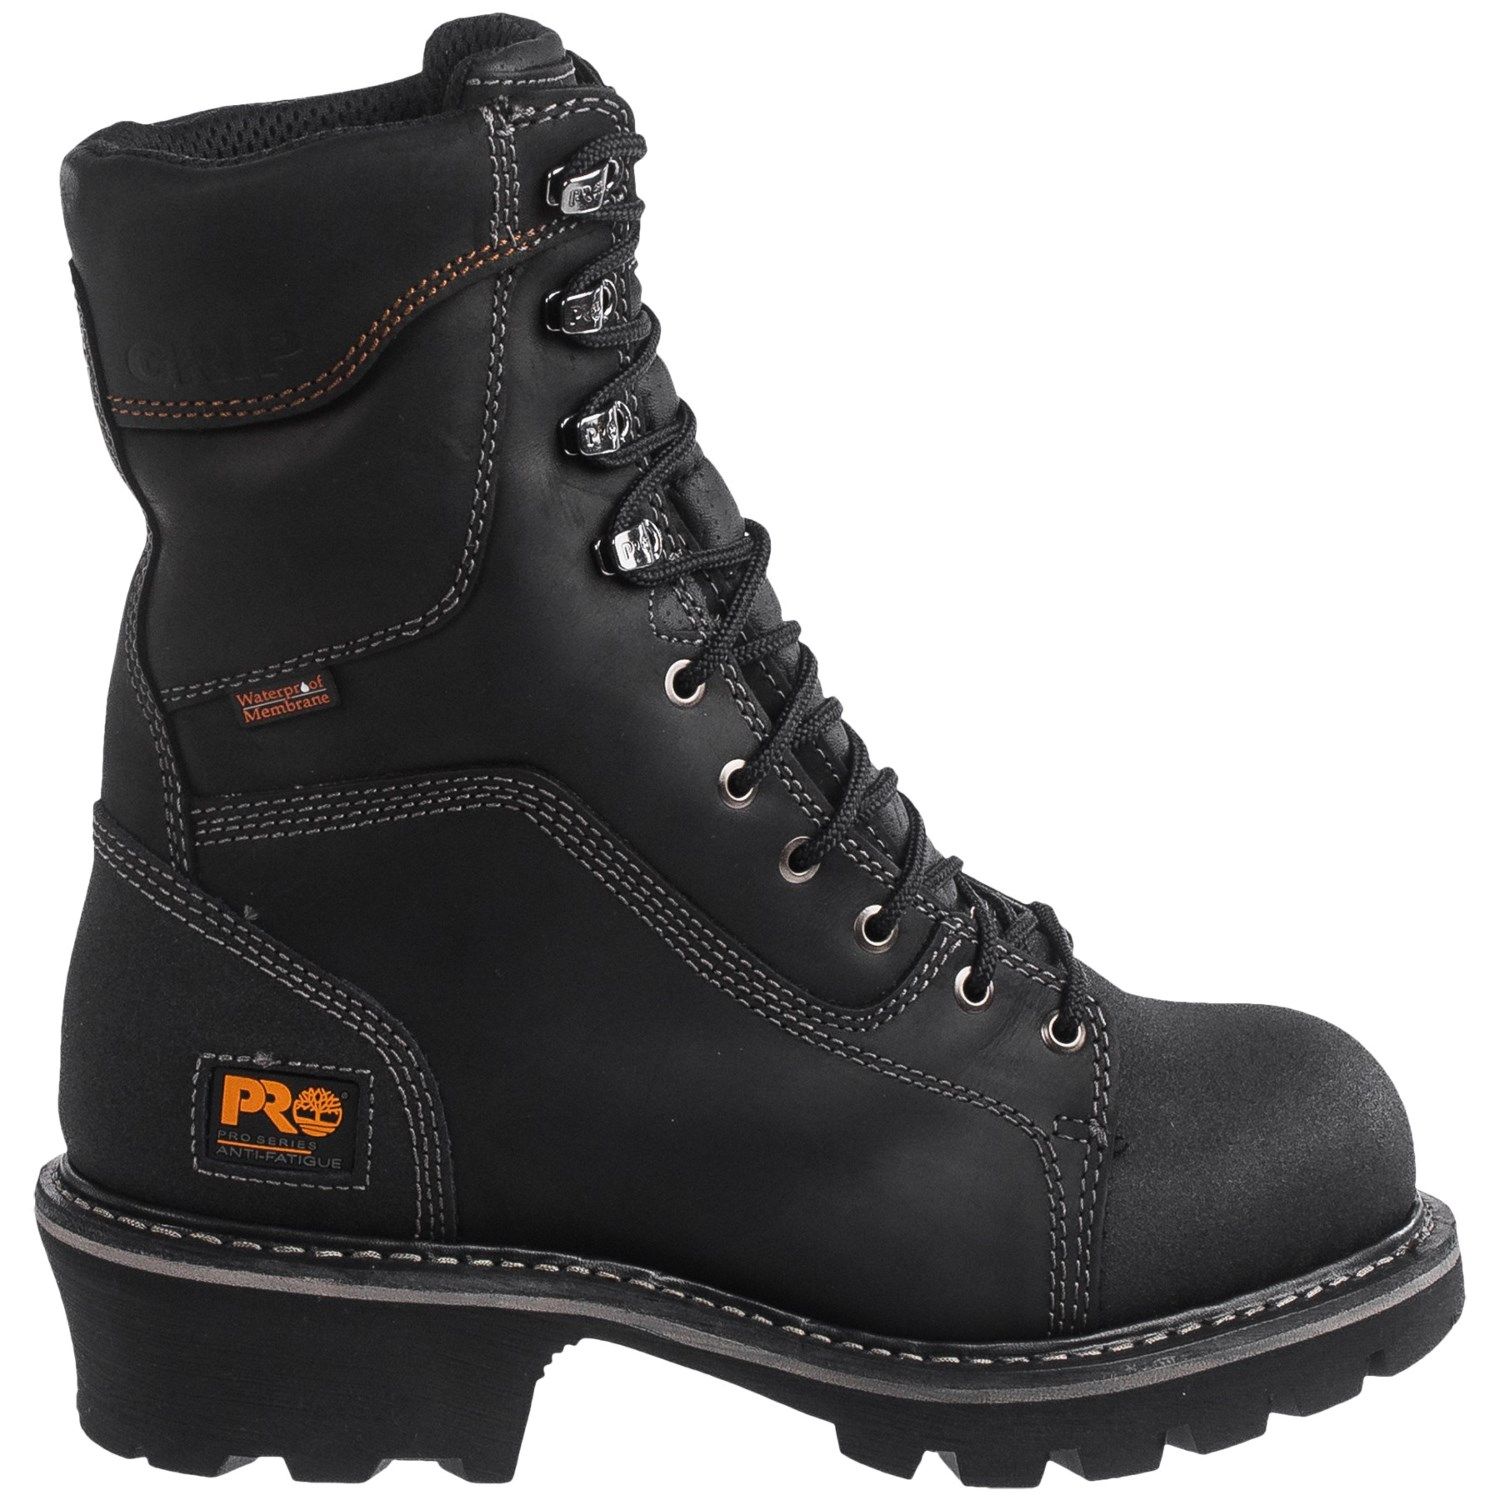 Timberland pro rip saw soft toe logger work boots for men save 39 timberland pro rip saw soft toe logger work boots waterproof 9 for men biocorpaavc Images